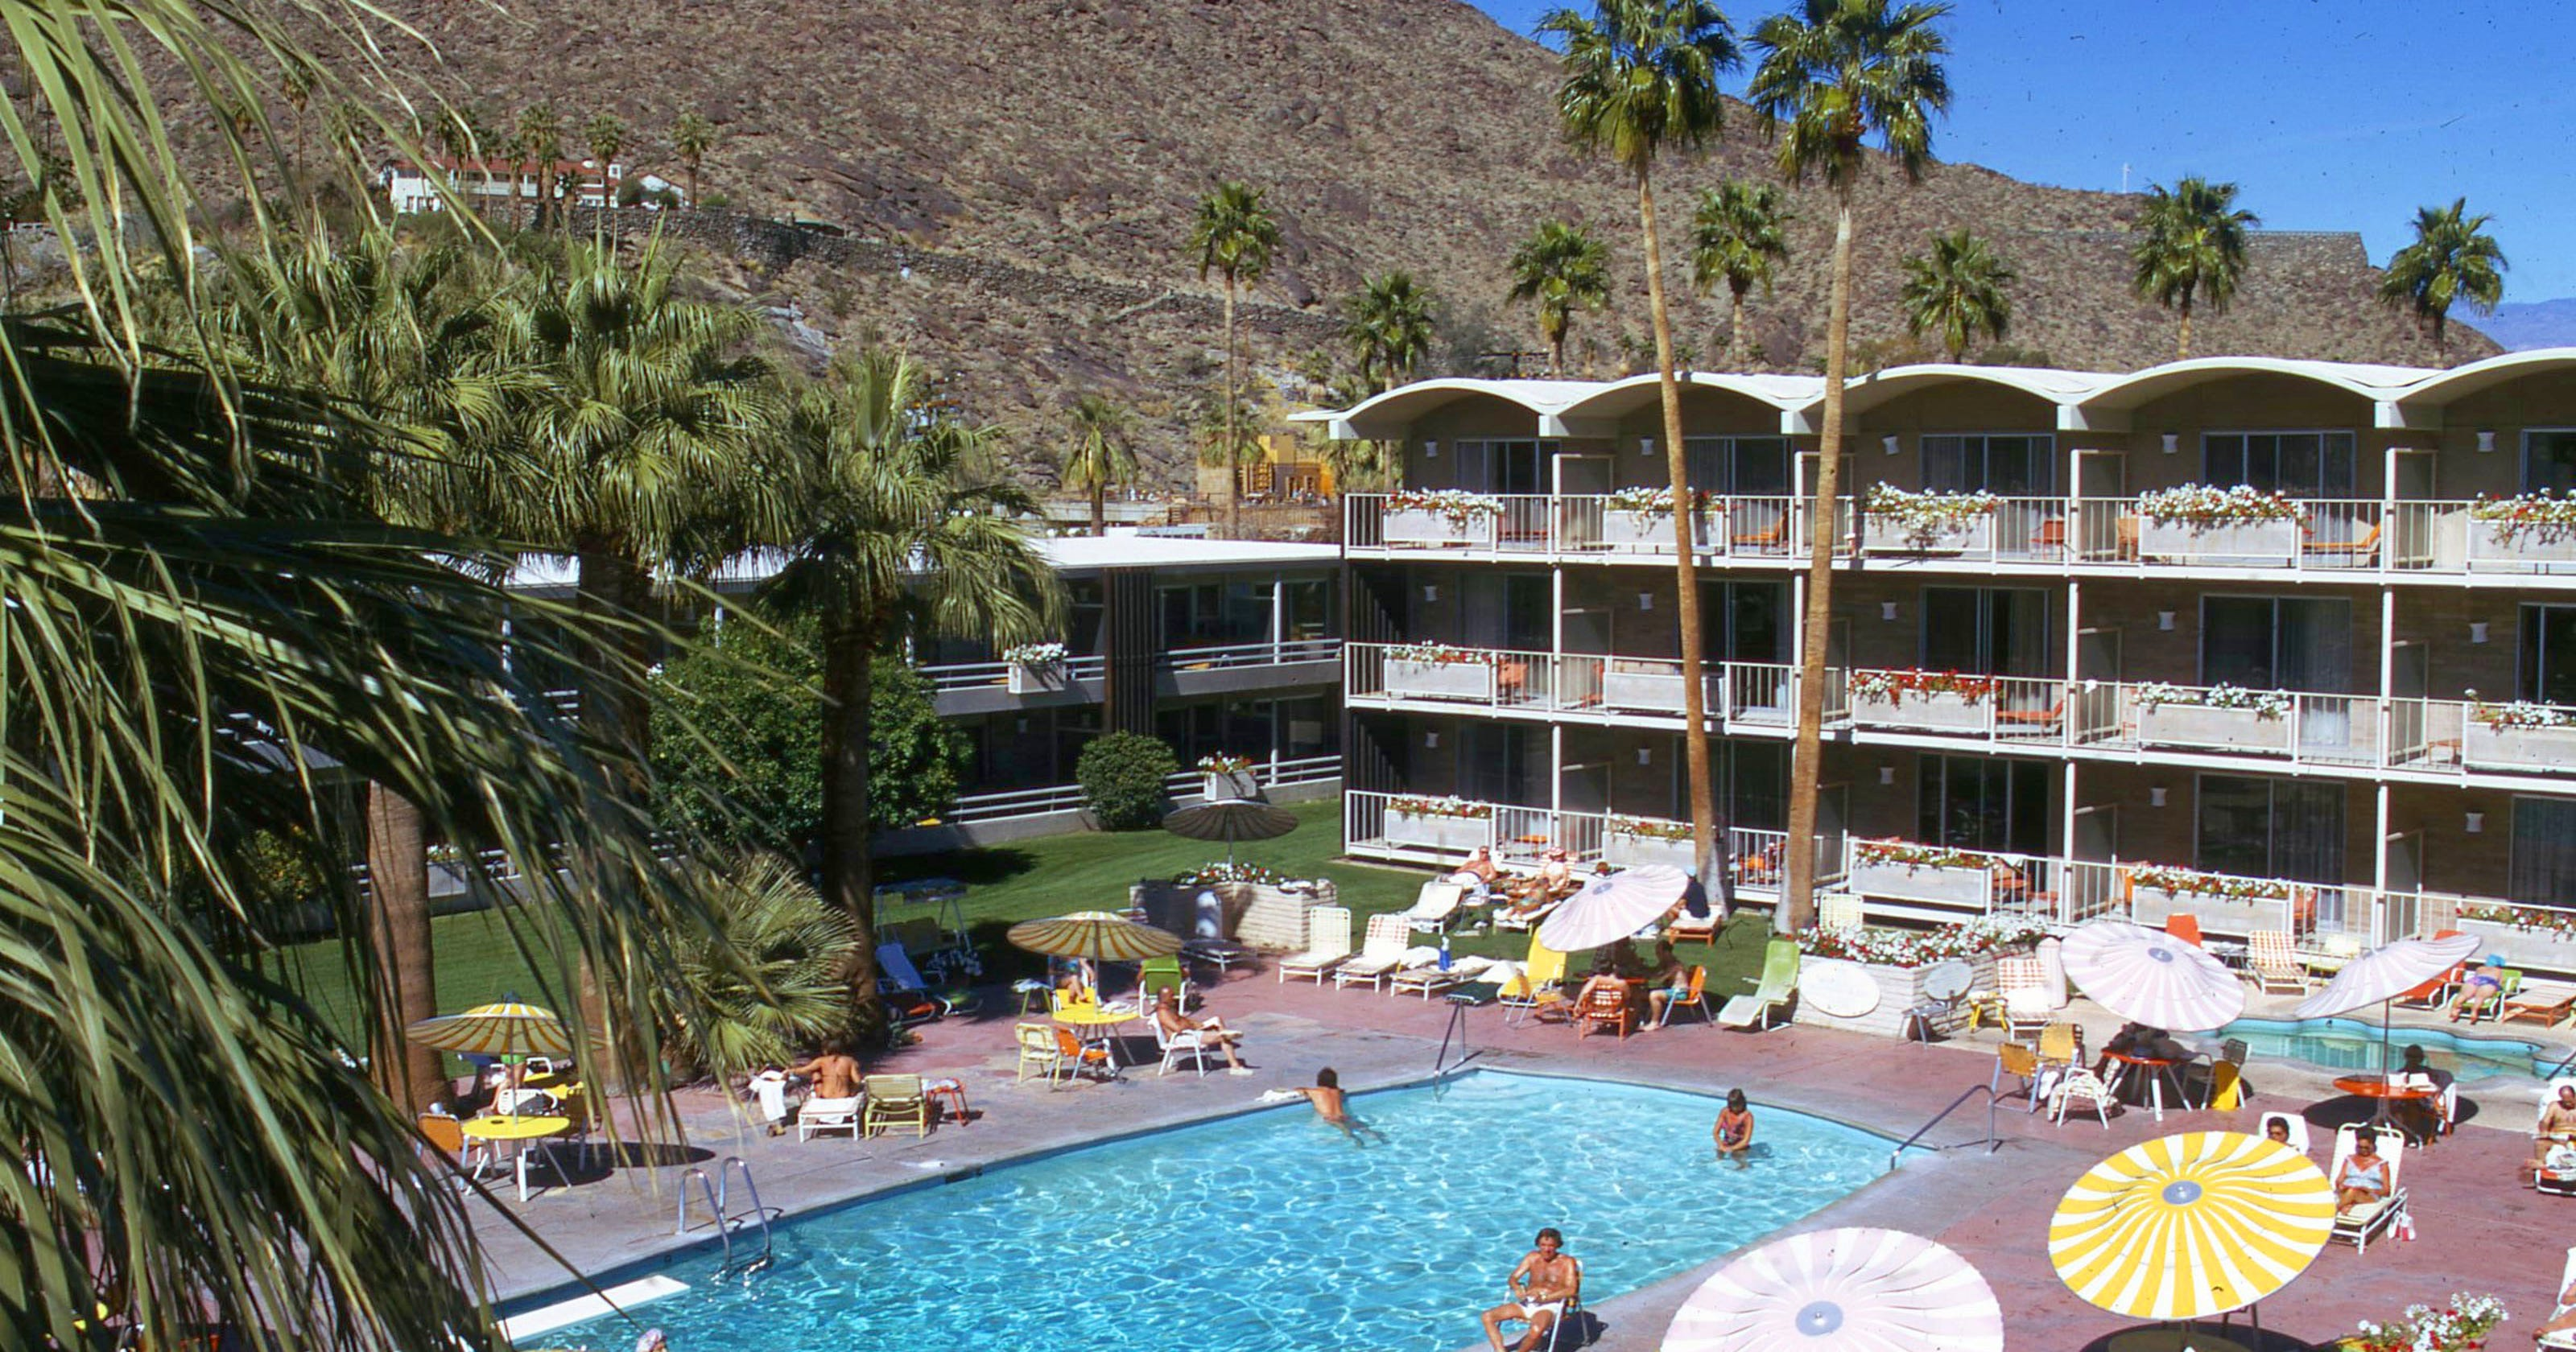 Palm Springs History: The Garlicks Built Up Oasis Hotel